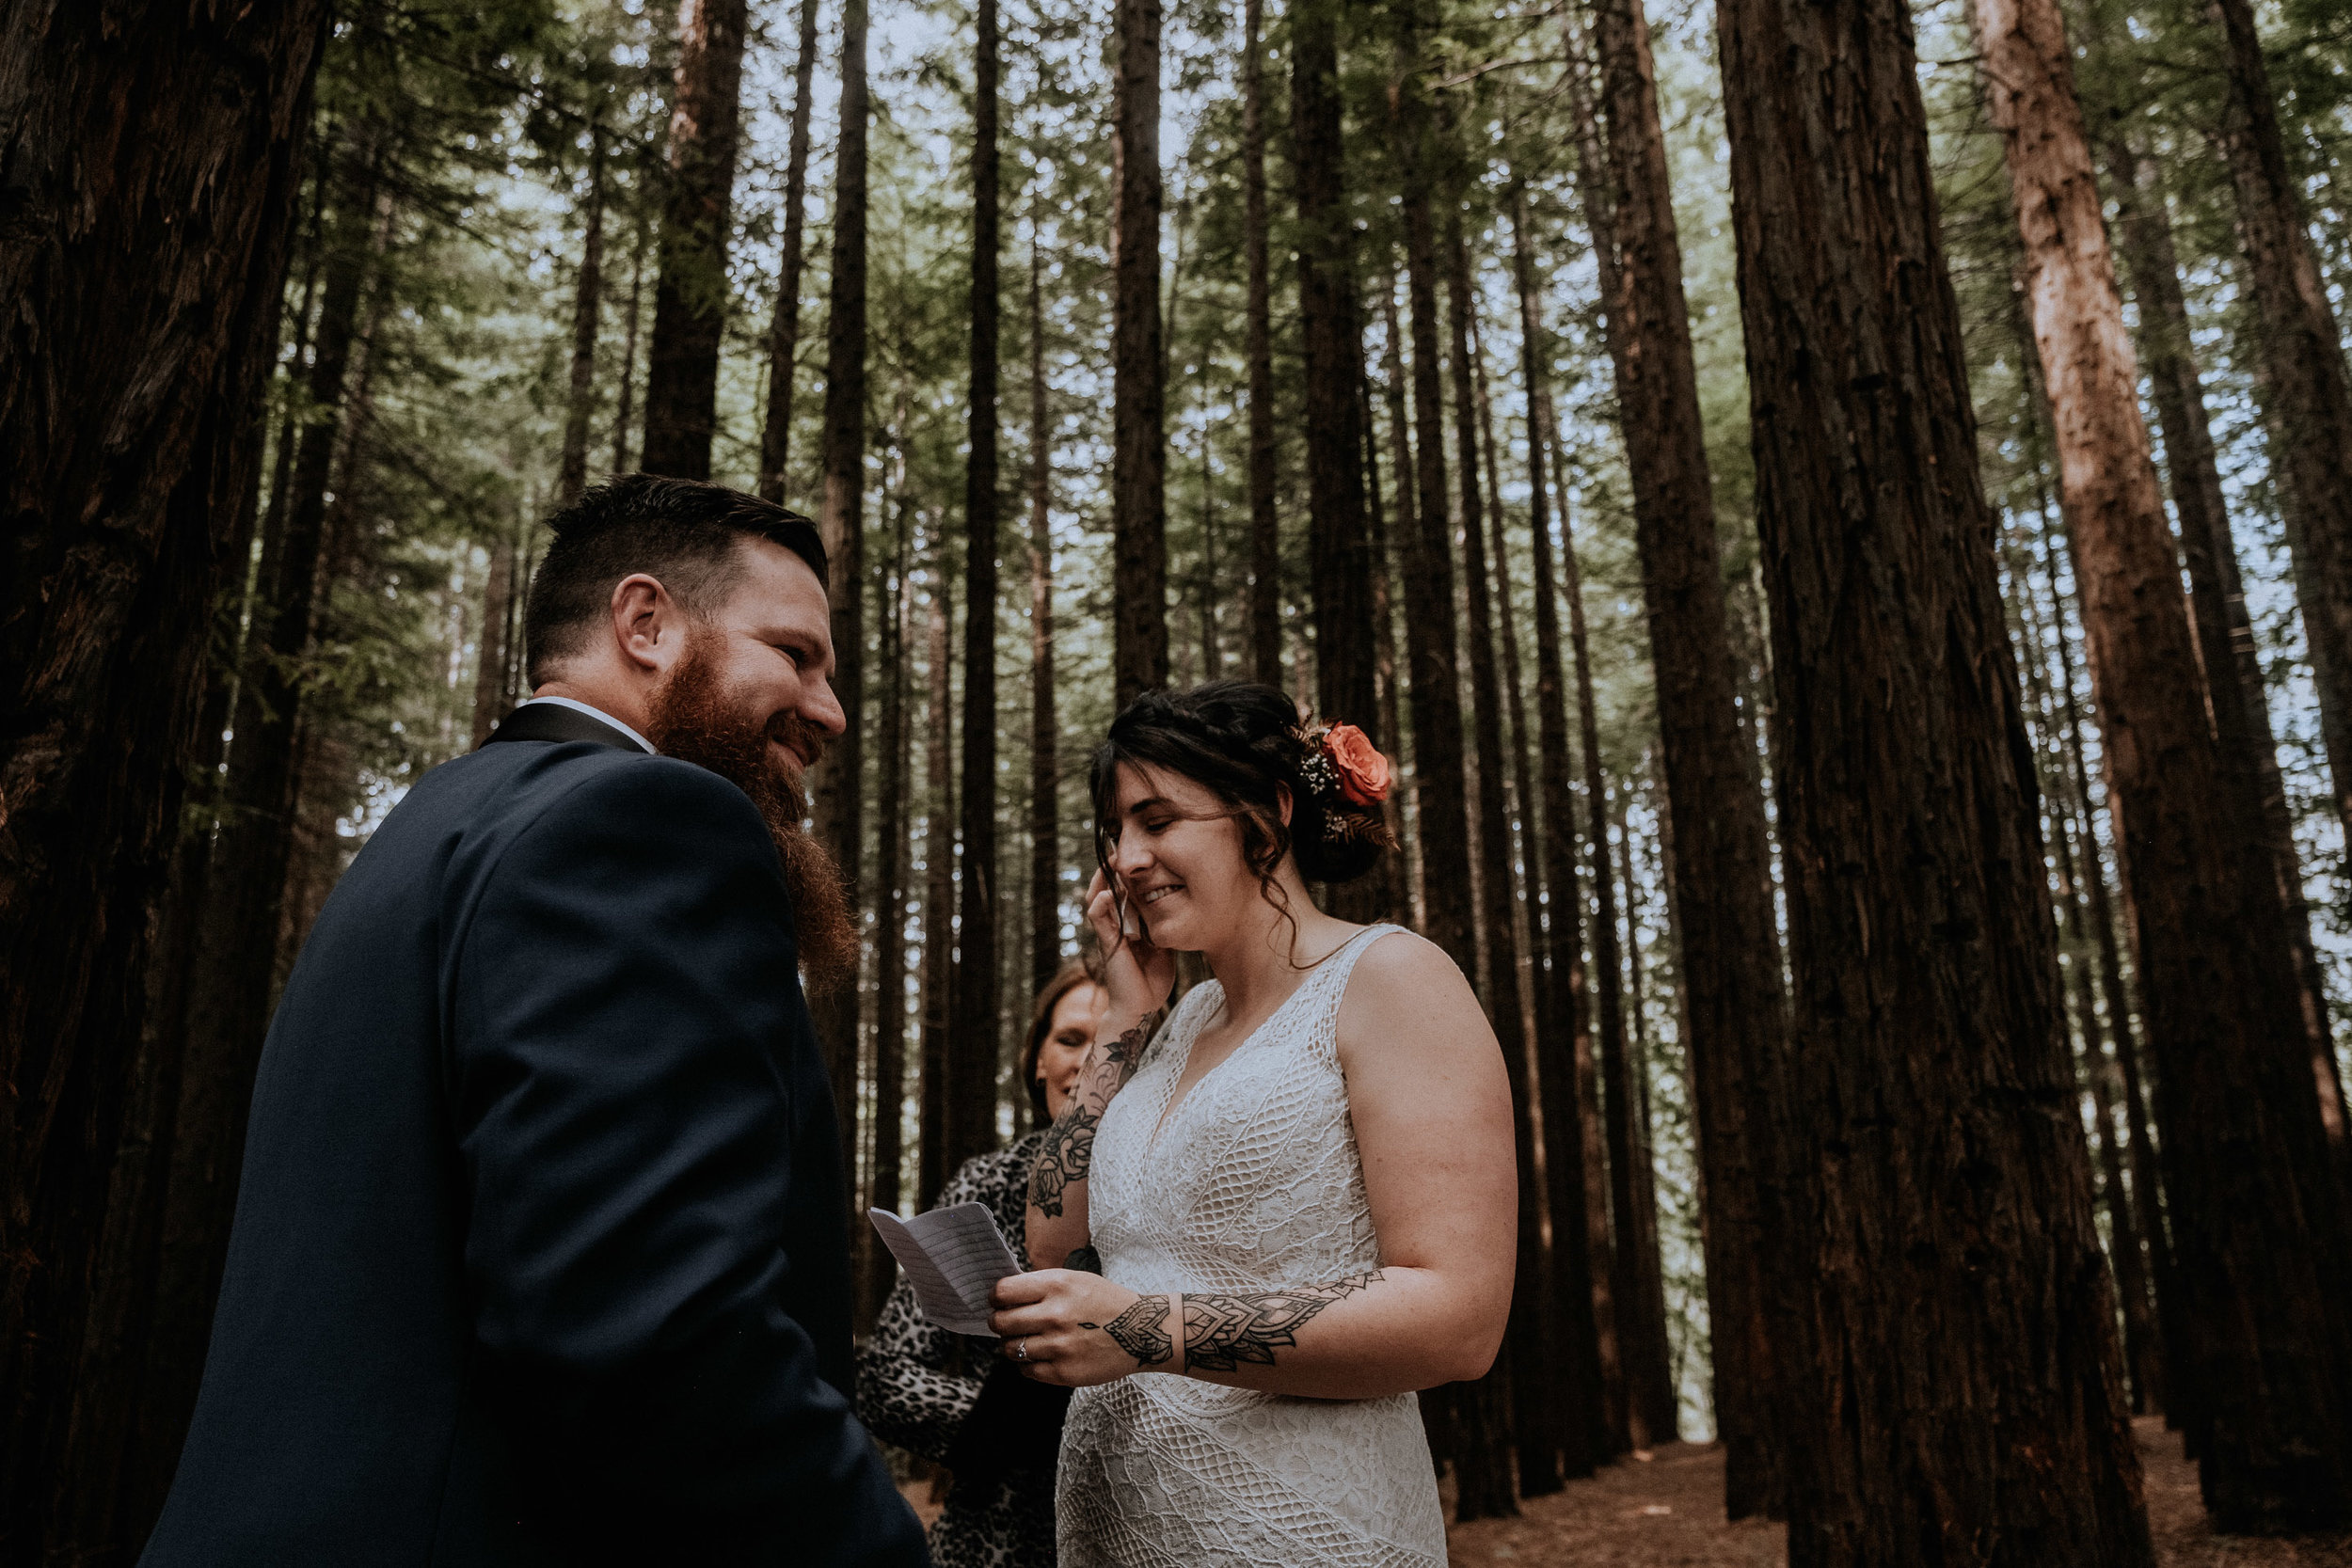 An emotional bride at her small wedding, candidly captured with intimate vibes, in the Redwood Forest in Warburton, near Melbourne